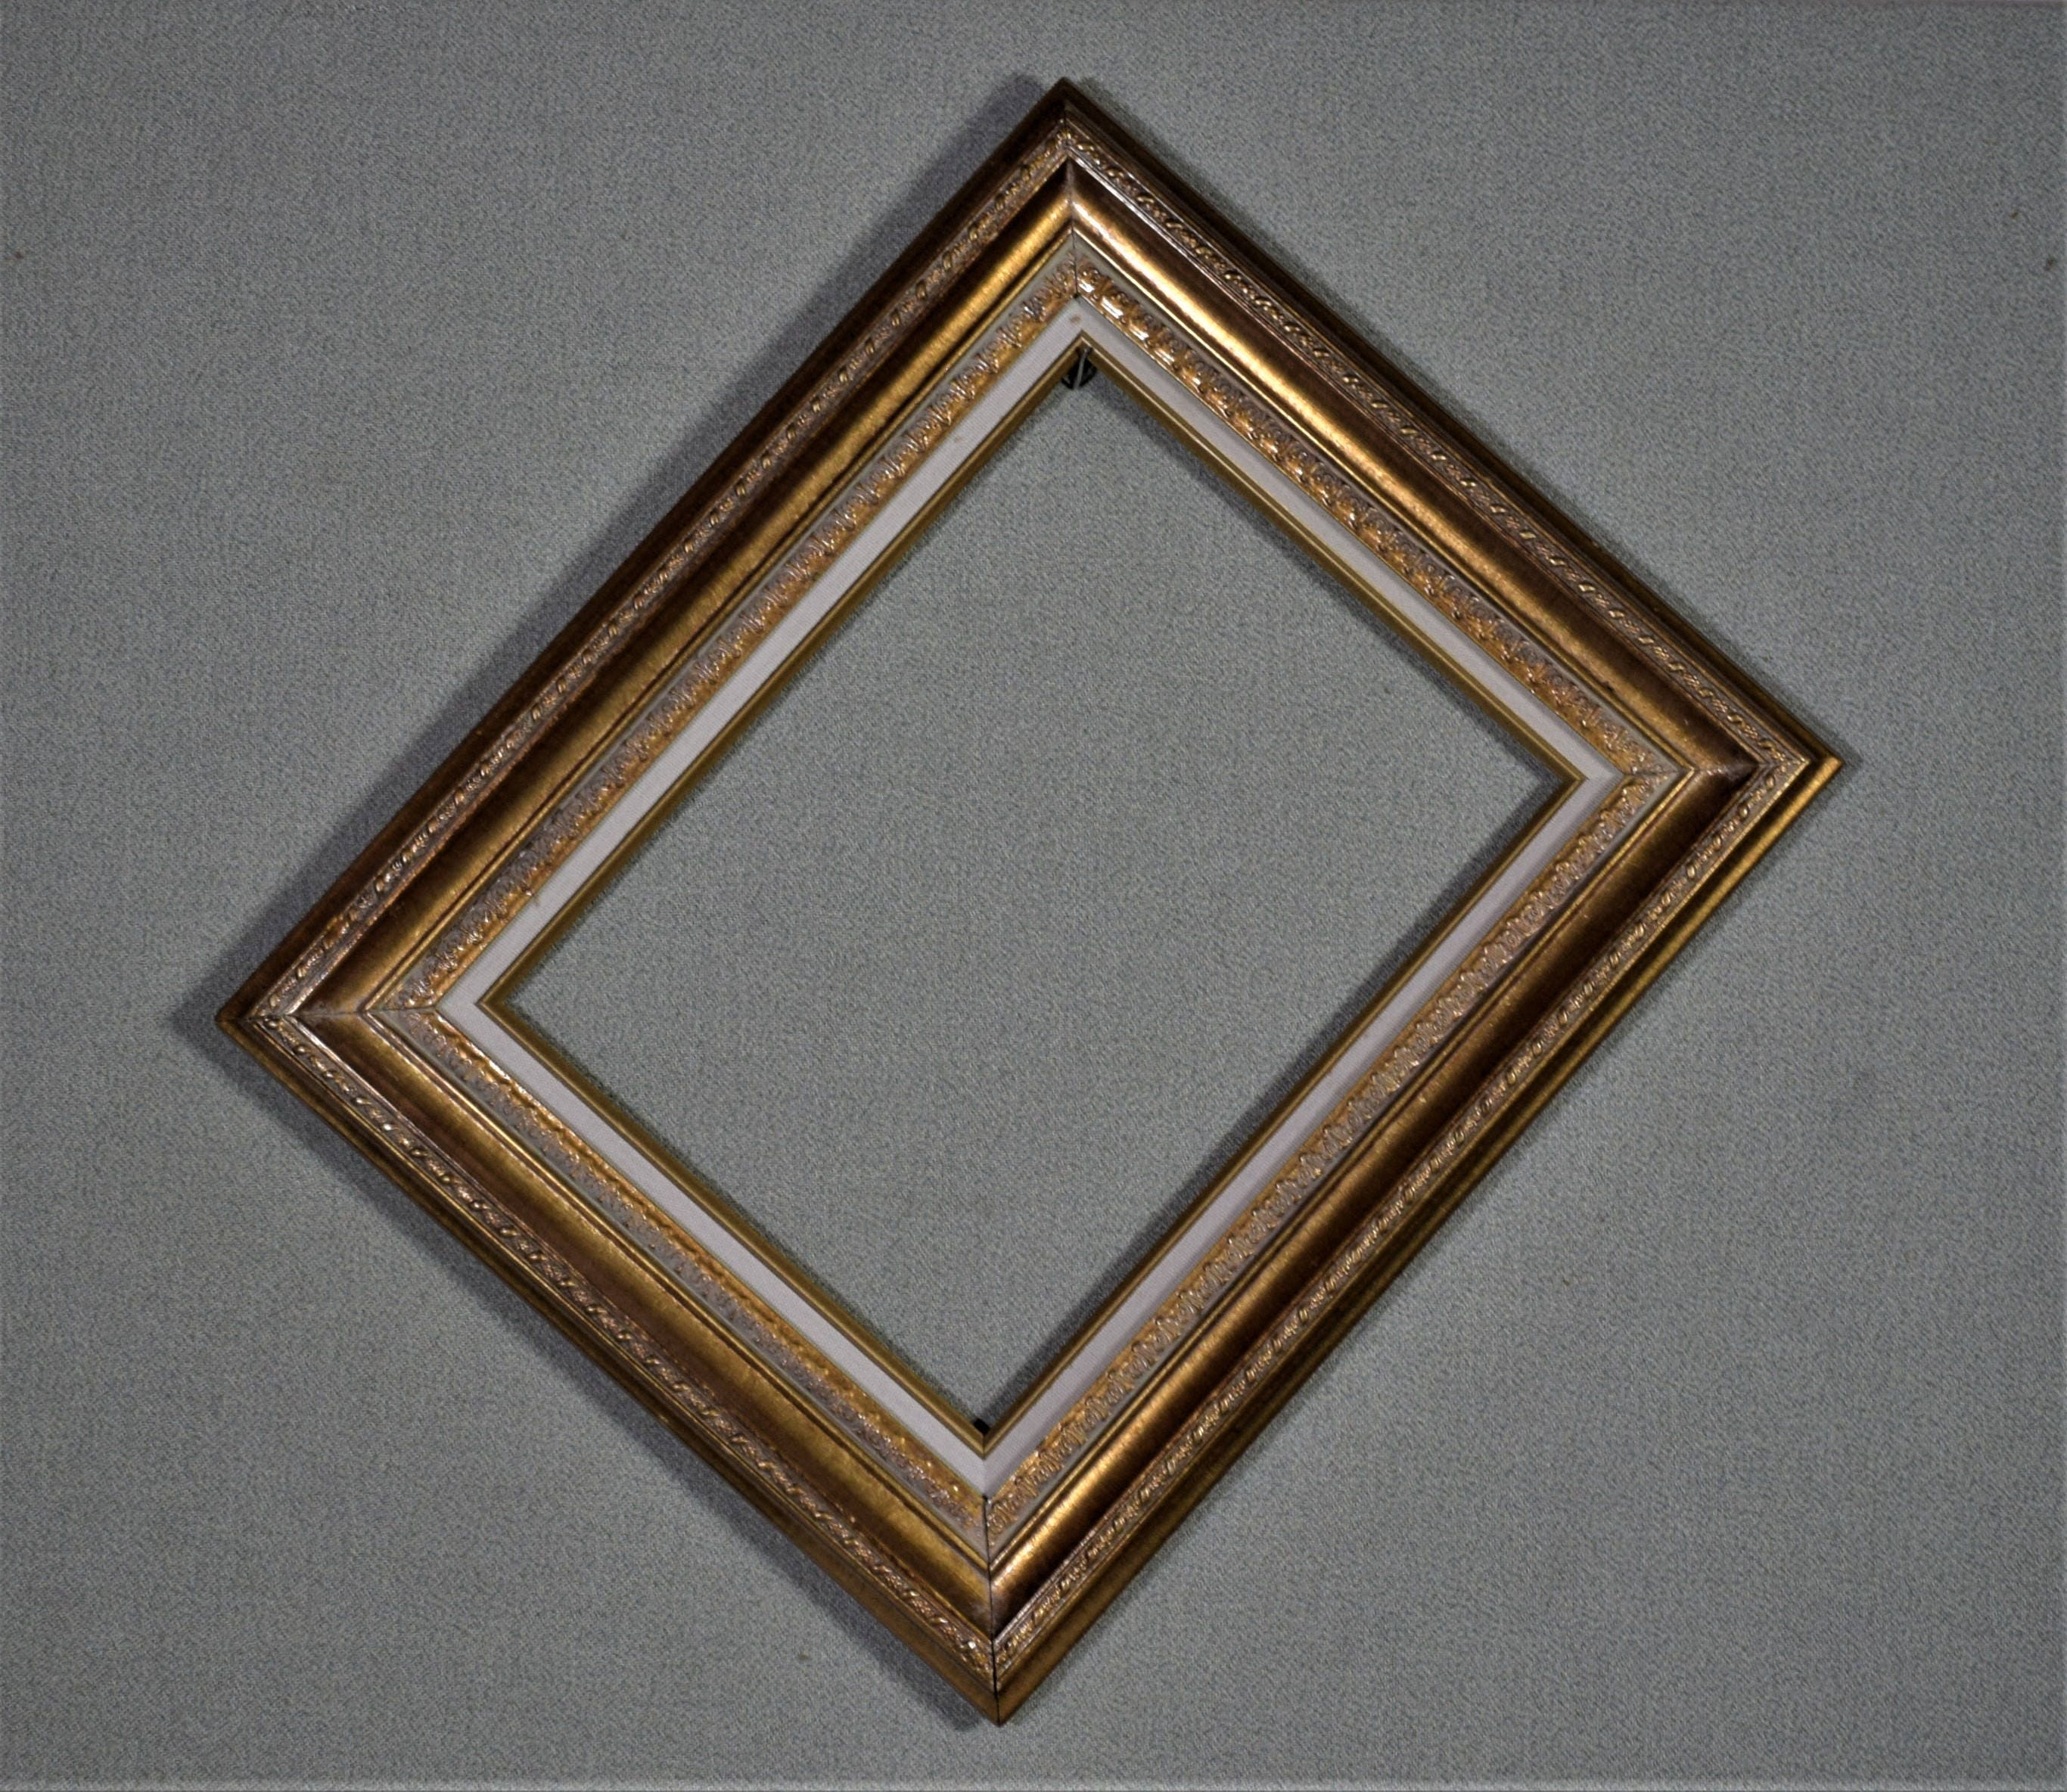 9x12 or 10x13 frame ornate gold wood with optional complete frame 9x12 or 10x13 frame ornate gold wood with optional complete frame kit glass and custom cut matting jeuxipadfo Gallery